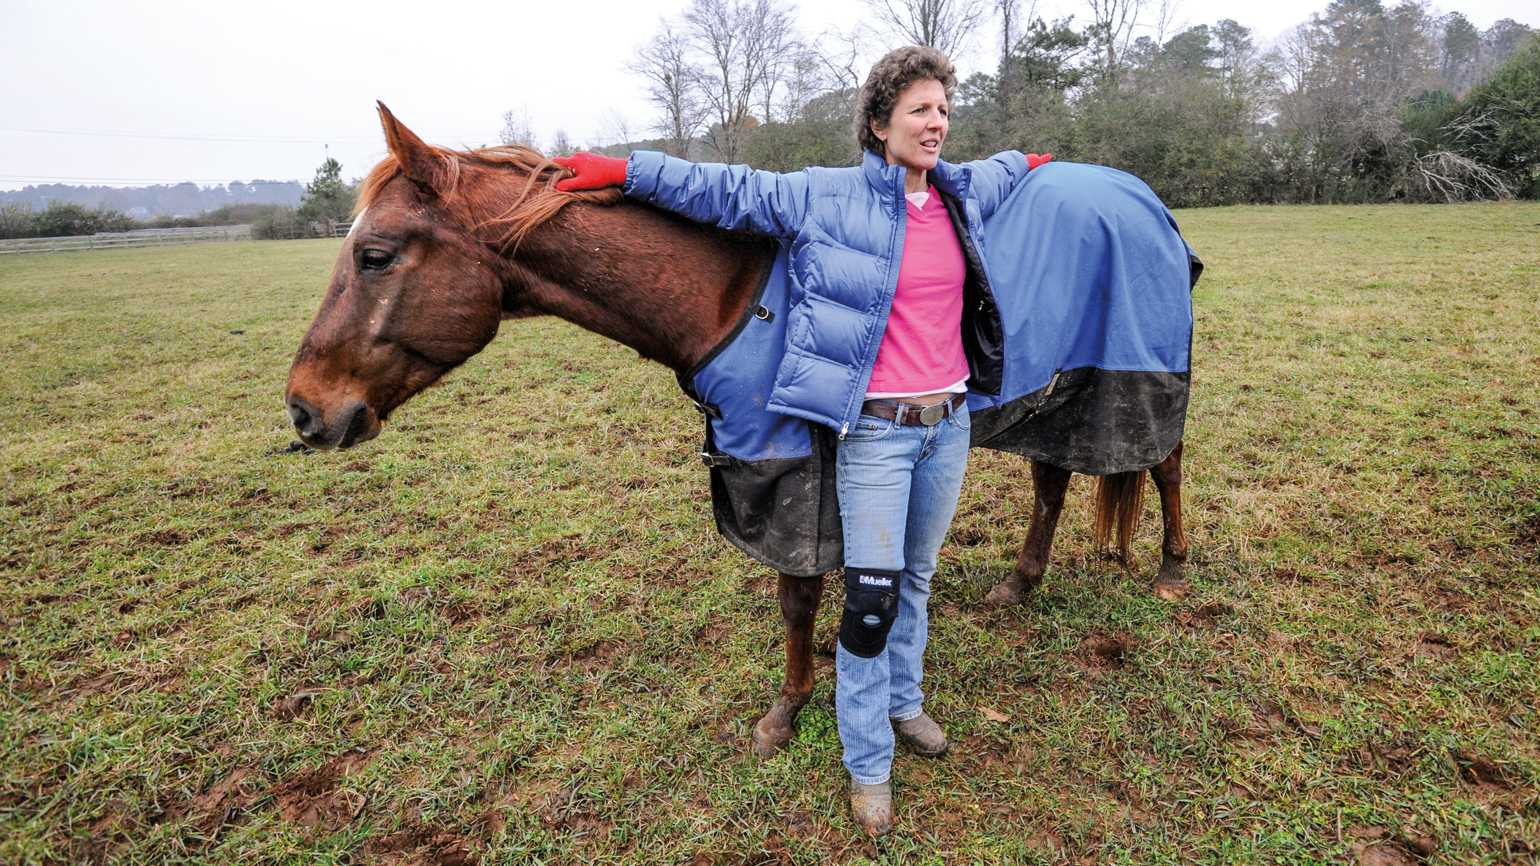 Michelle Akers and her horse